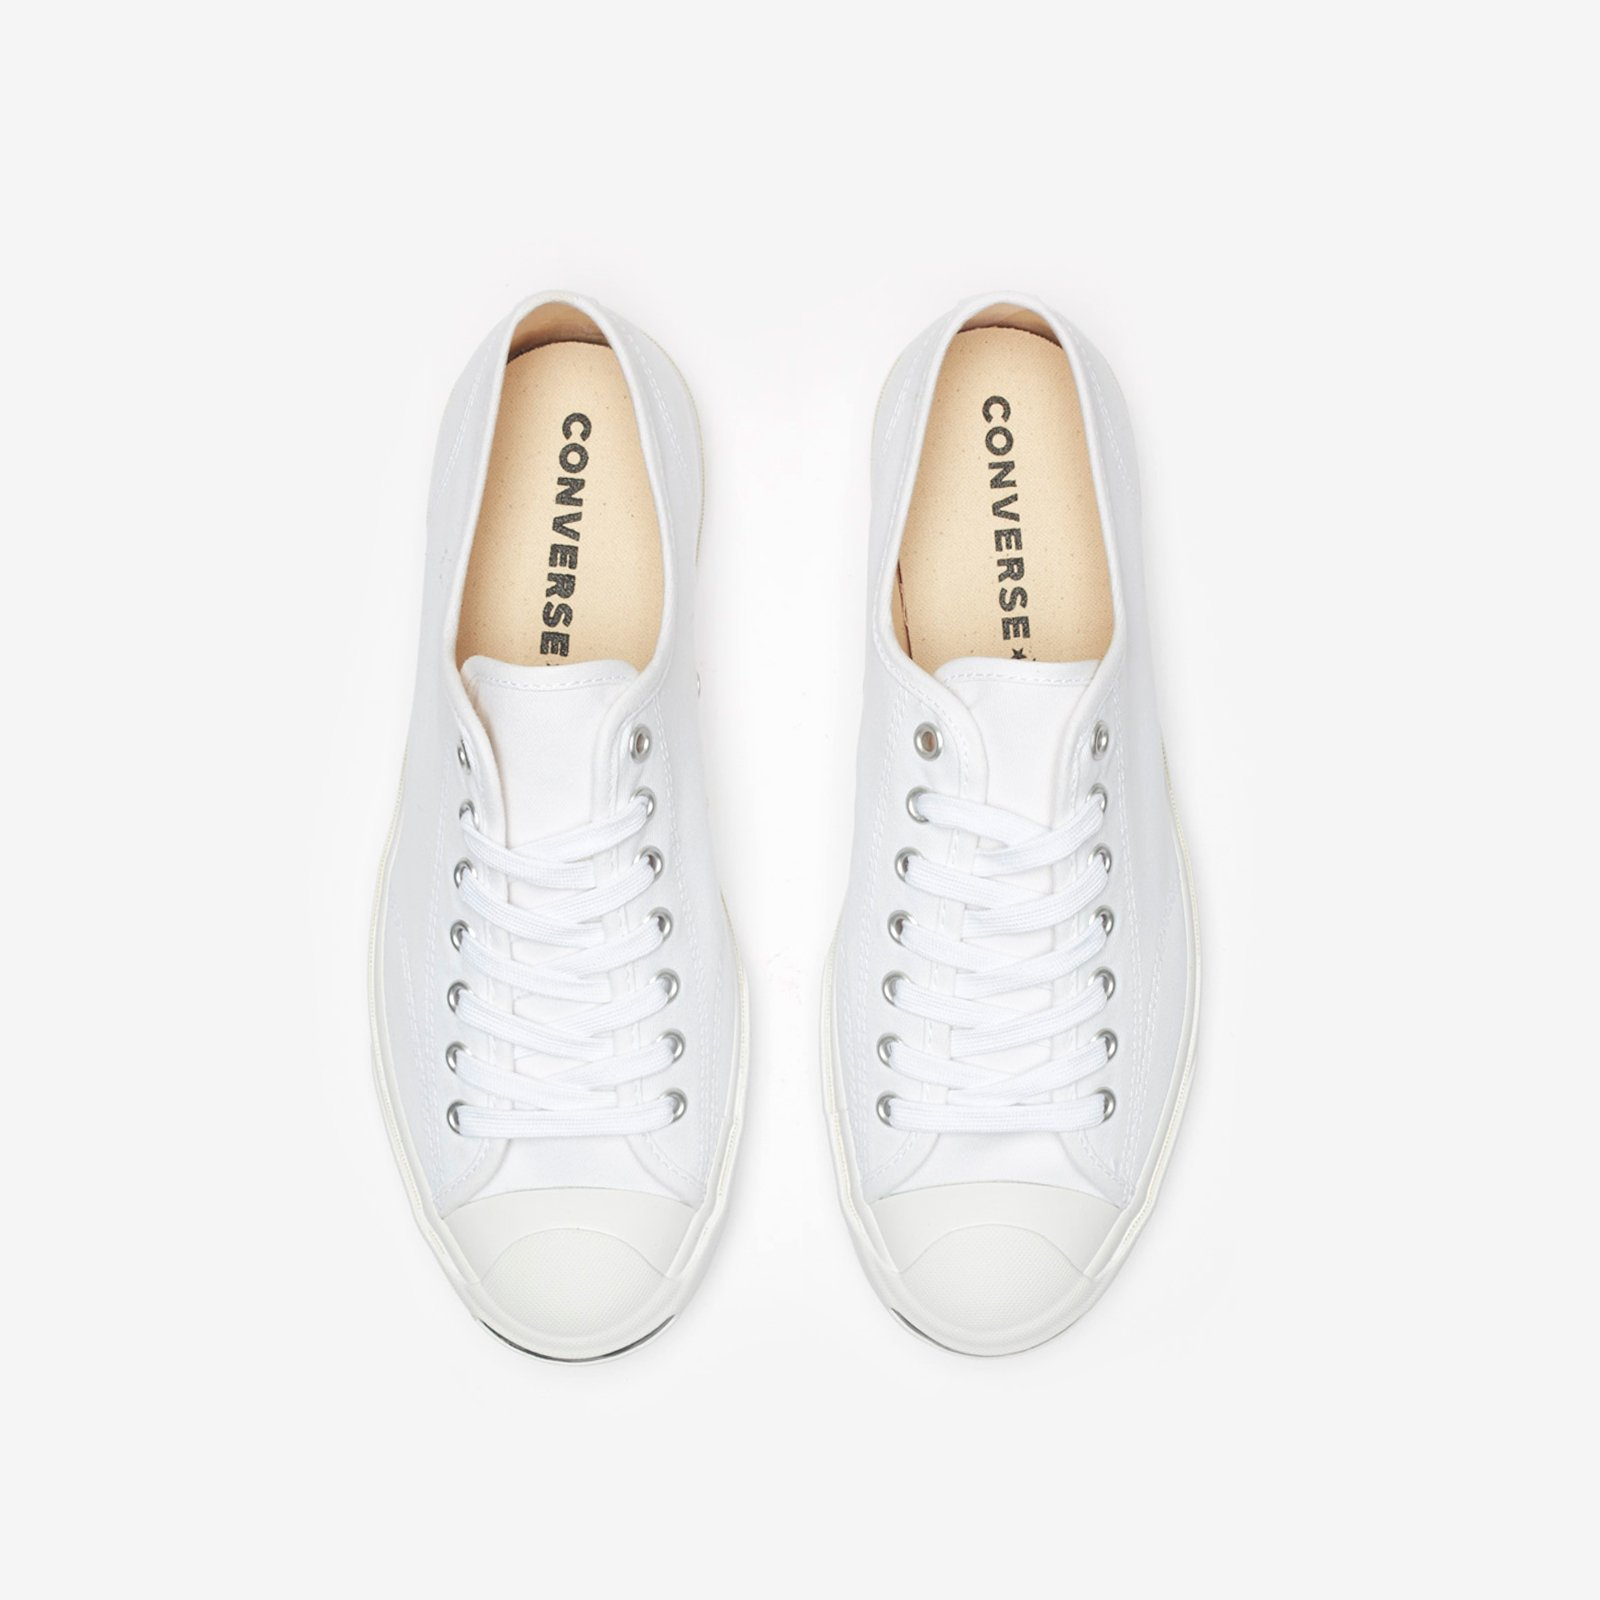 Converse Jack Purcell Ox 164057c Sneakersnstuff